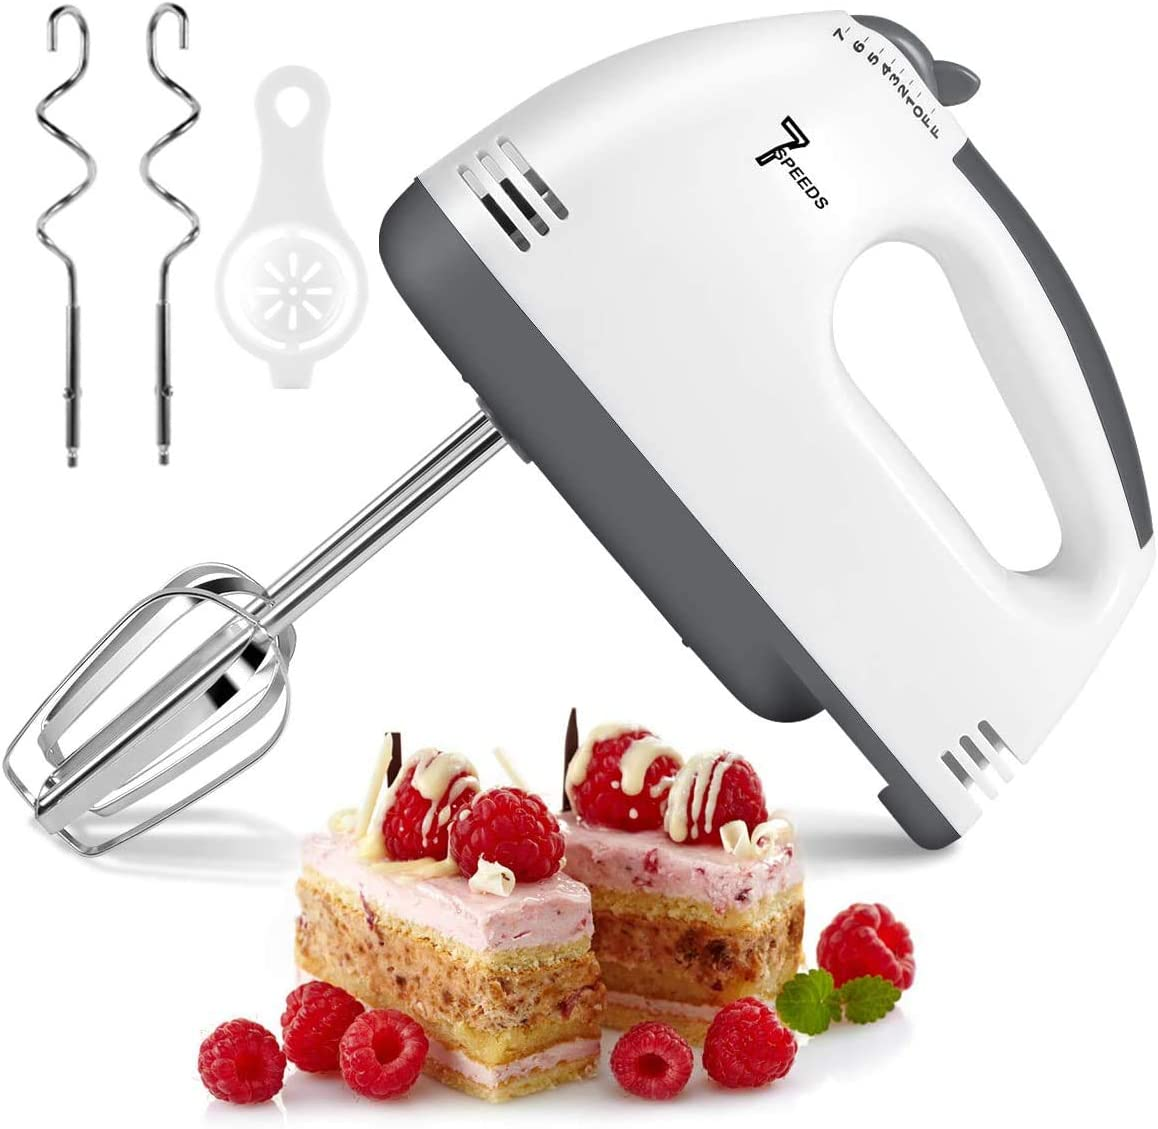 Hand Mixer Electric, 7-Speeds Lightweight Powerful Hand-Held Electric Mixer, Portable Kitchen Mixer Stainless Steel Egg Whisk with Egg White Separator, Dough Sticks and Egg Sticks for Baking, Cakes